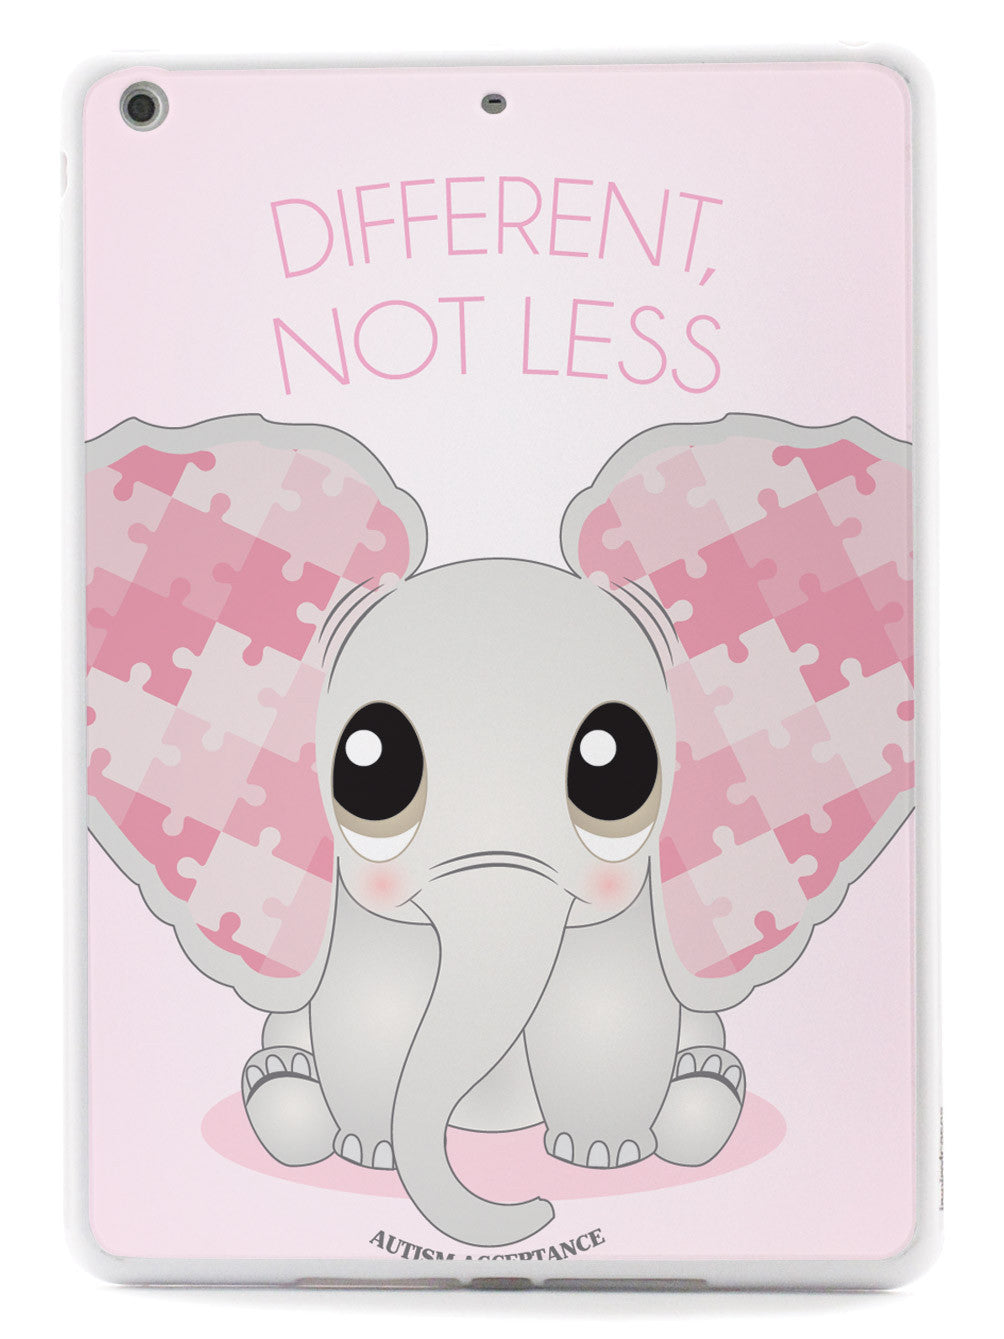 Different, Not Less - Elephant - Autism Awareness Case